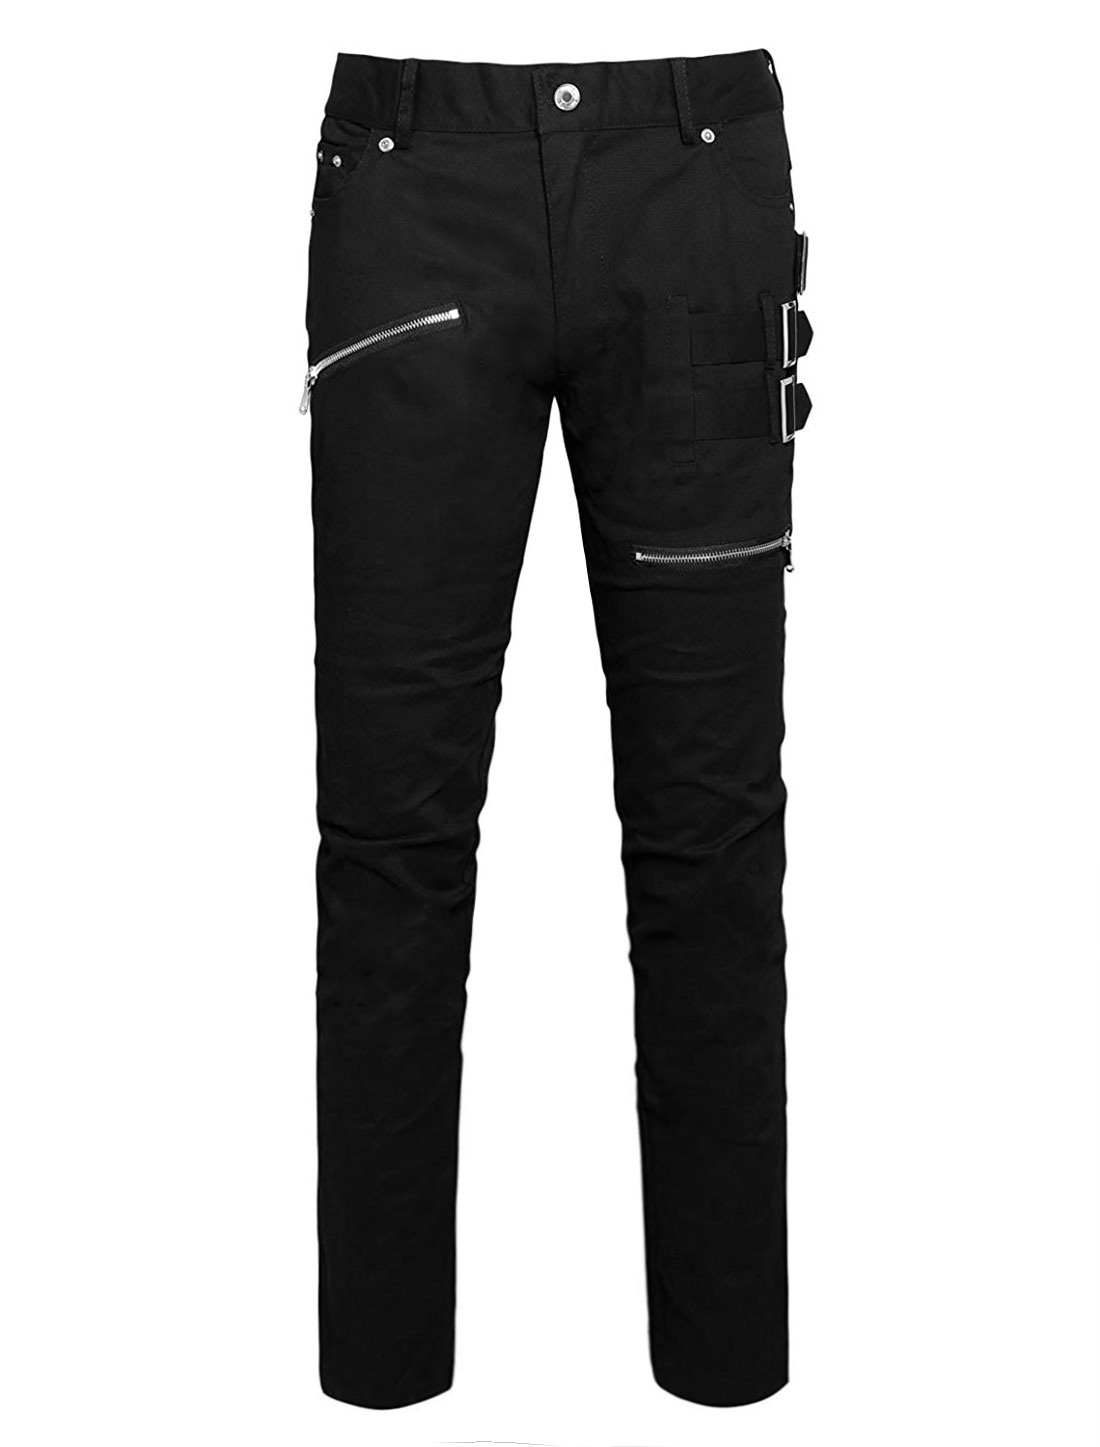 Men Casual Slim Fit Patch Pockets Buckle Zipper Gothic Punk Rock Pants Black M